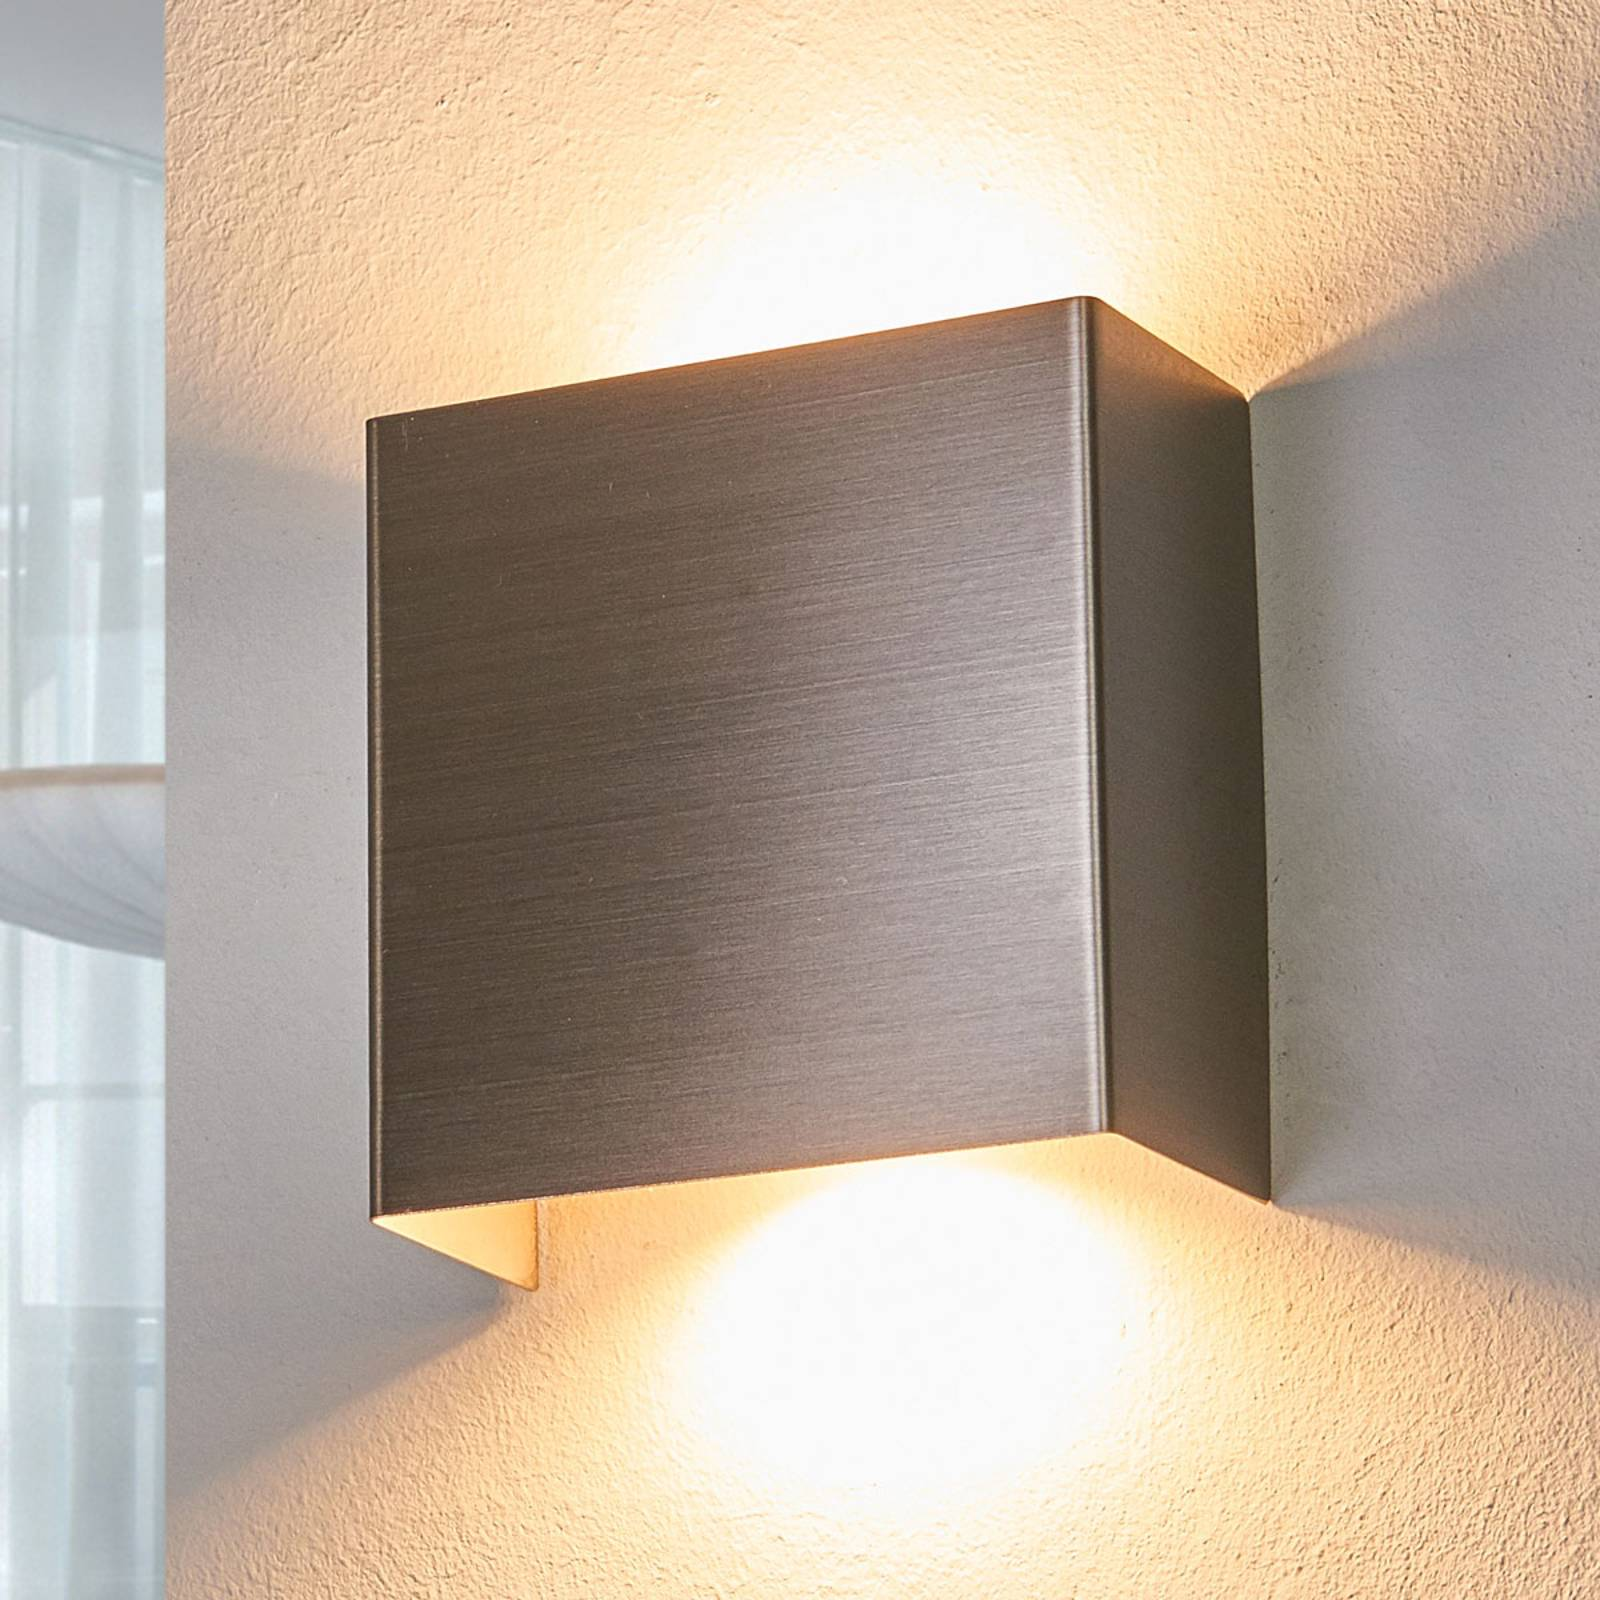 LED wall light Manon, satin nickel, 10.5 cm from Lindby